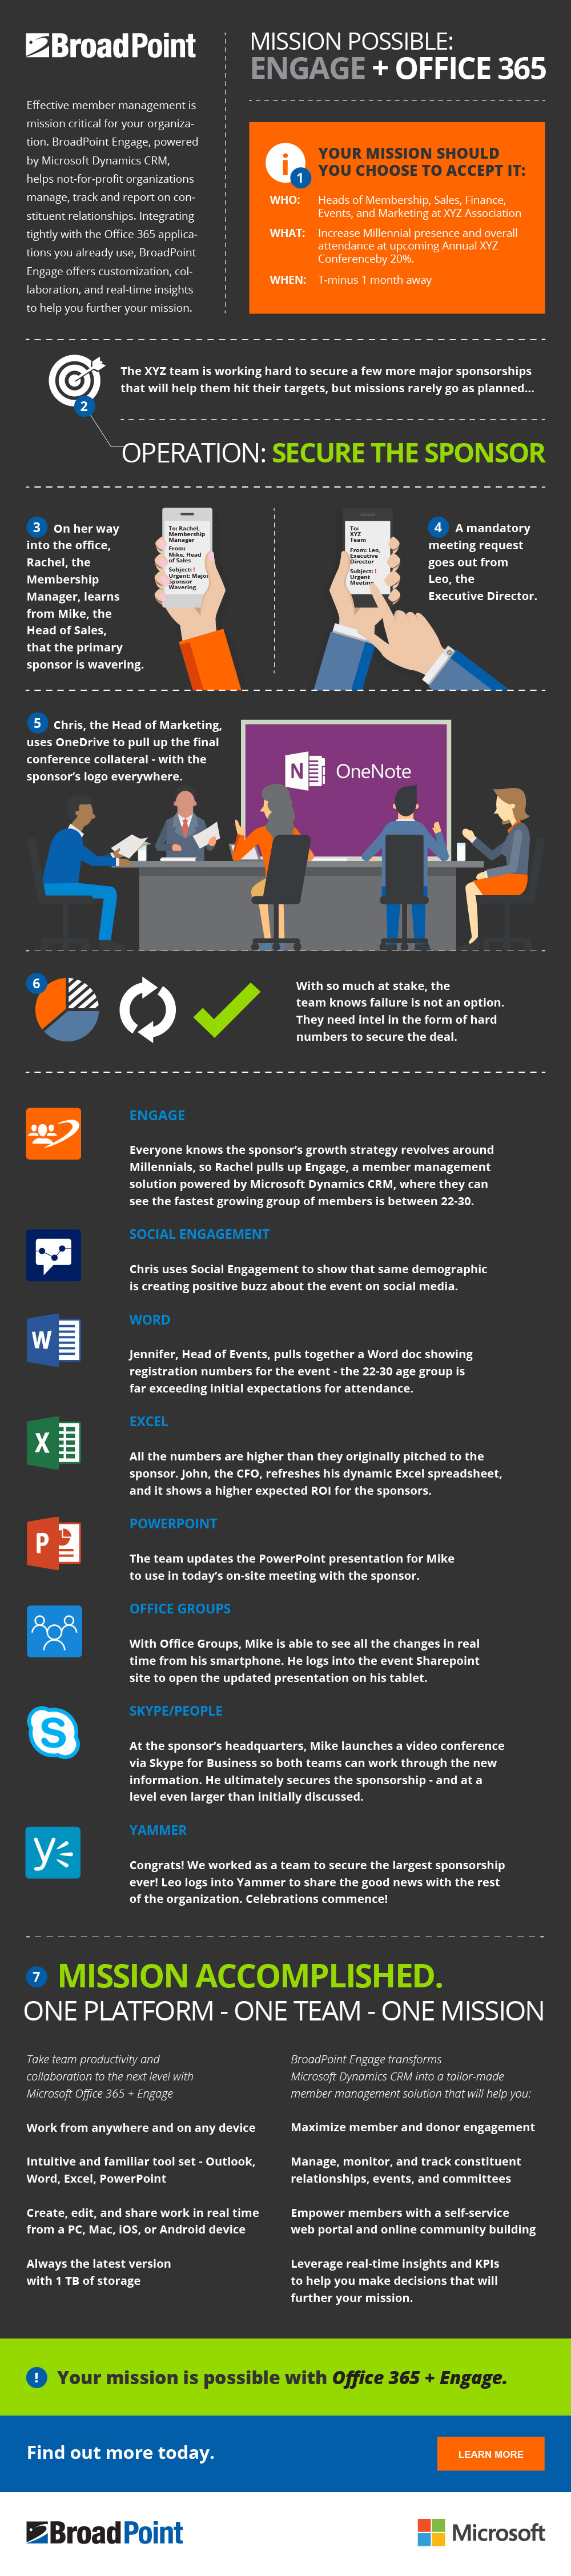 infographic-broadpoint-microsoft-may2016-nkittles